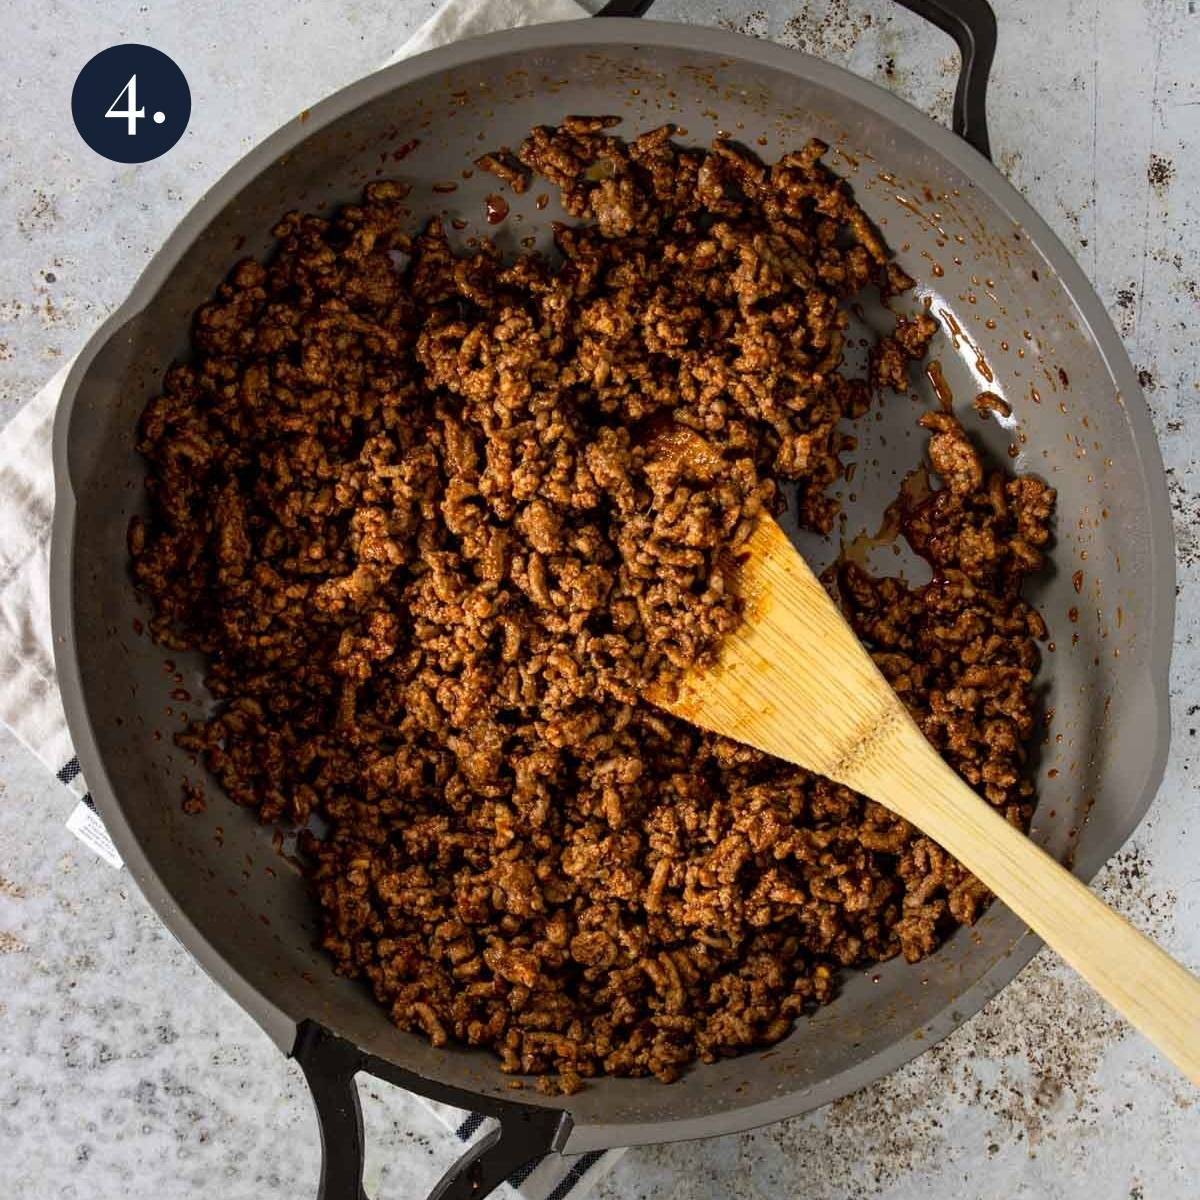 homemade taco meat in a skillet